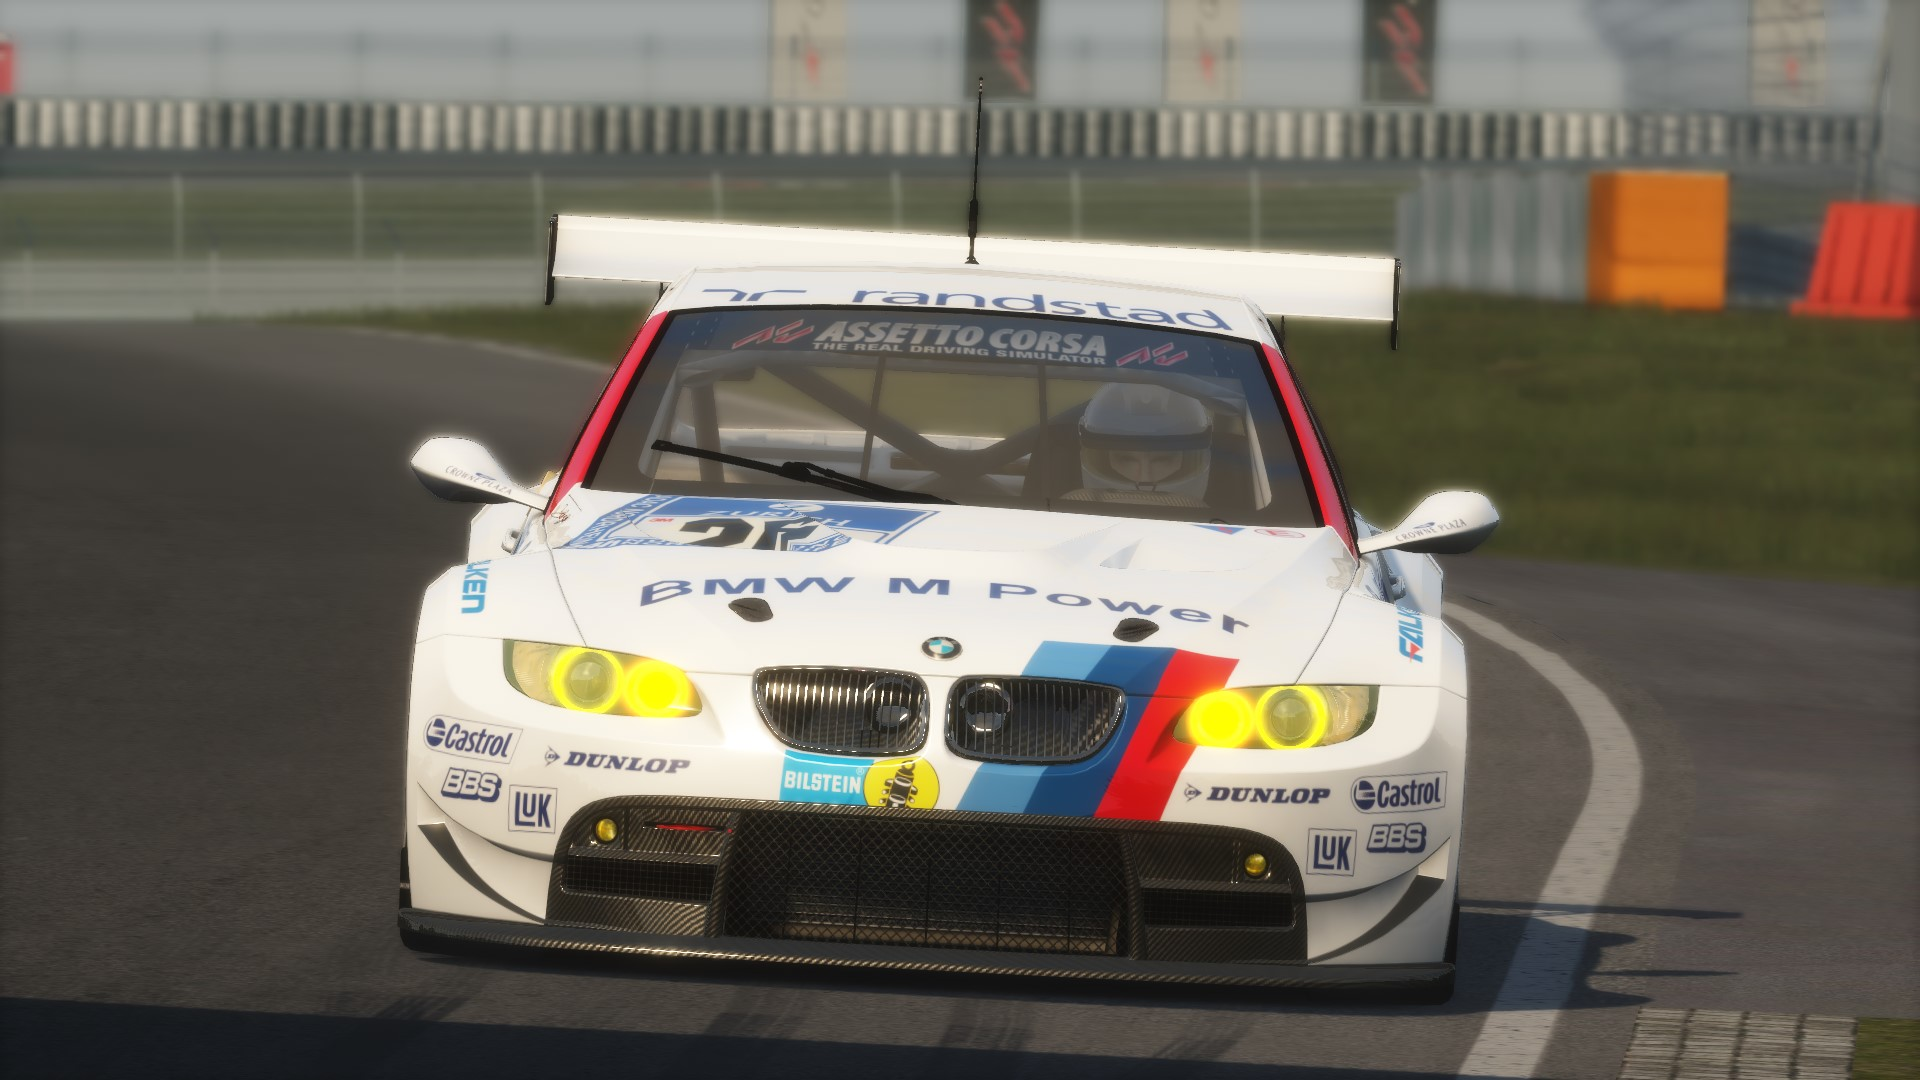 Screenshot_bmw_m3_gt2_nurburgring-sprint_7-2-2015-2-17-7.jpg